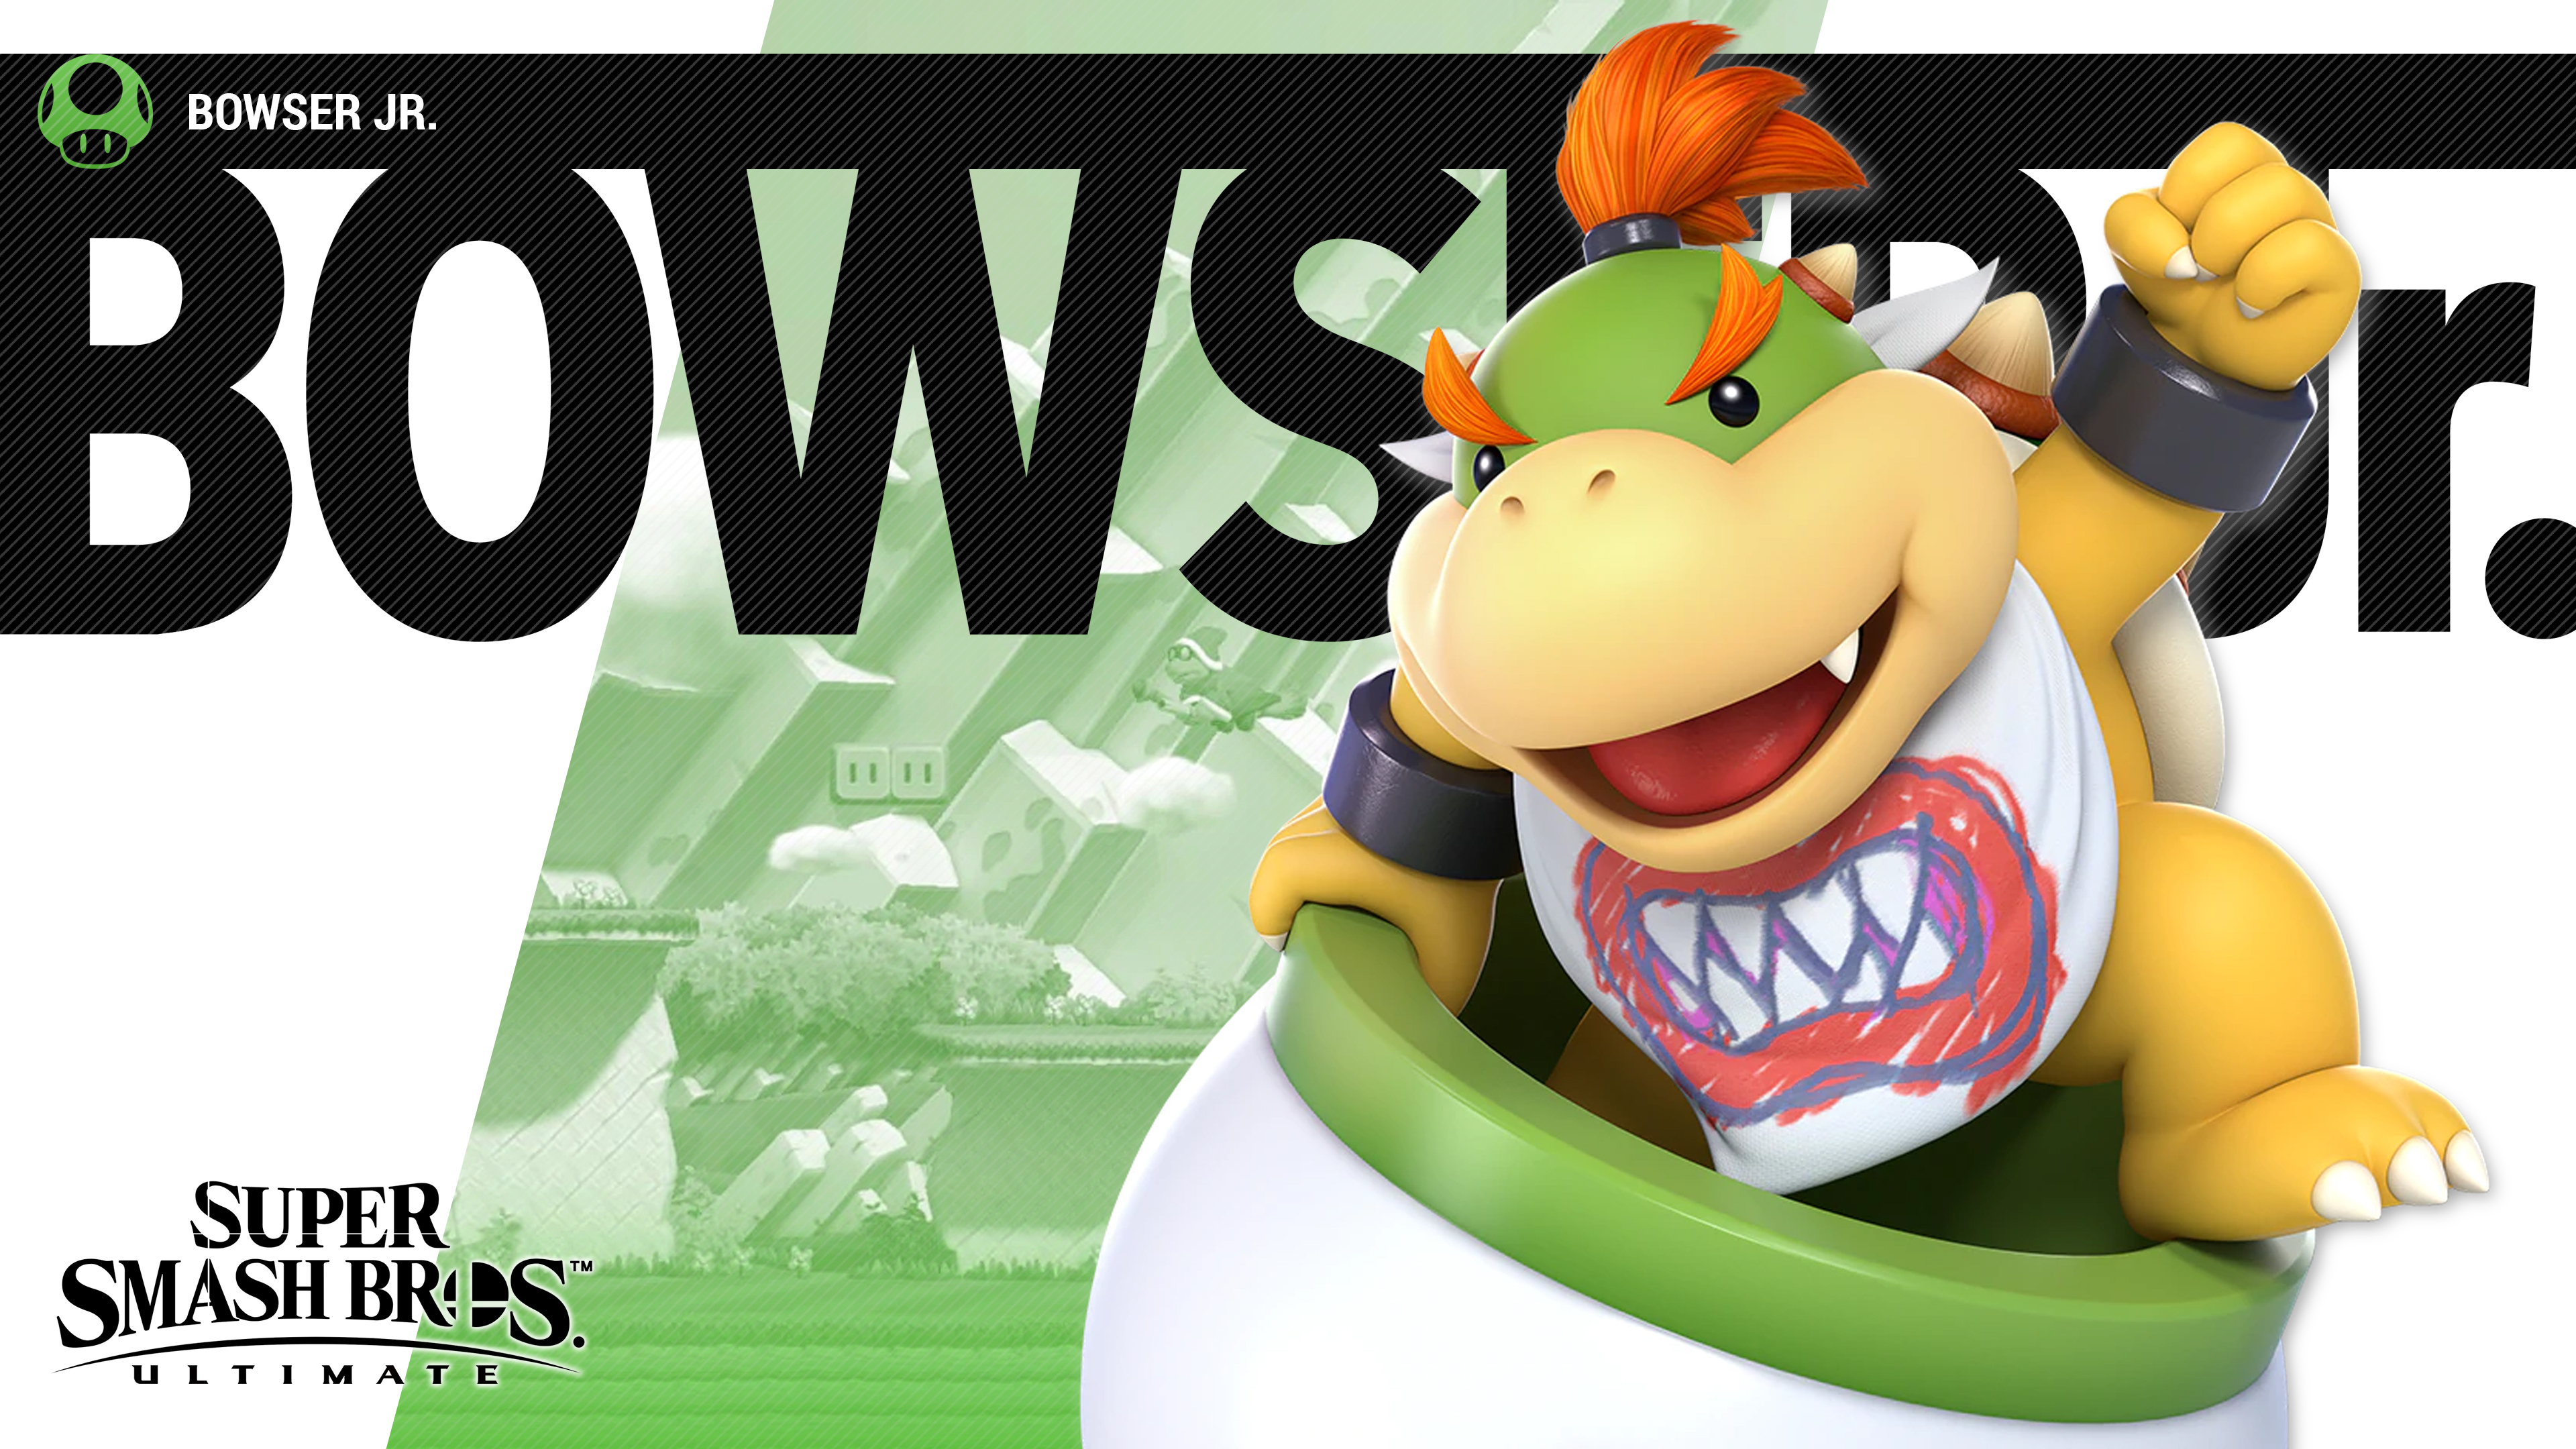 Running Wallpaper Iphone Super Smash Bros Ultimate Bowser Jr Wallpapers Cat With